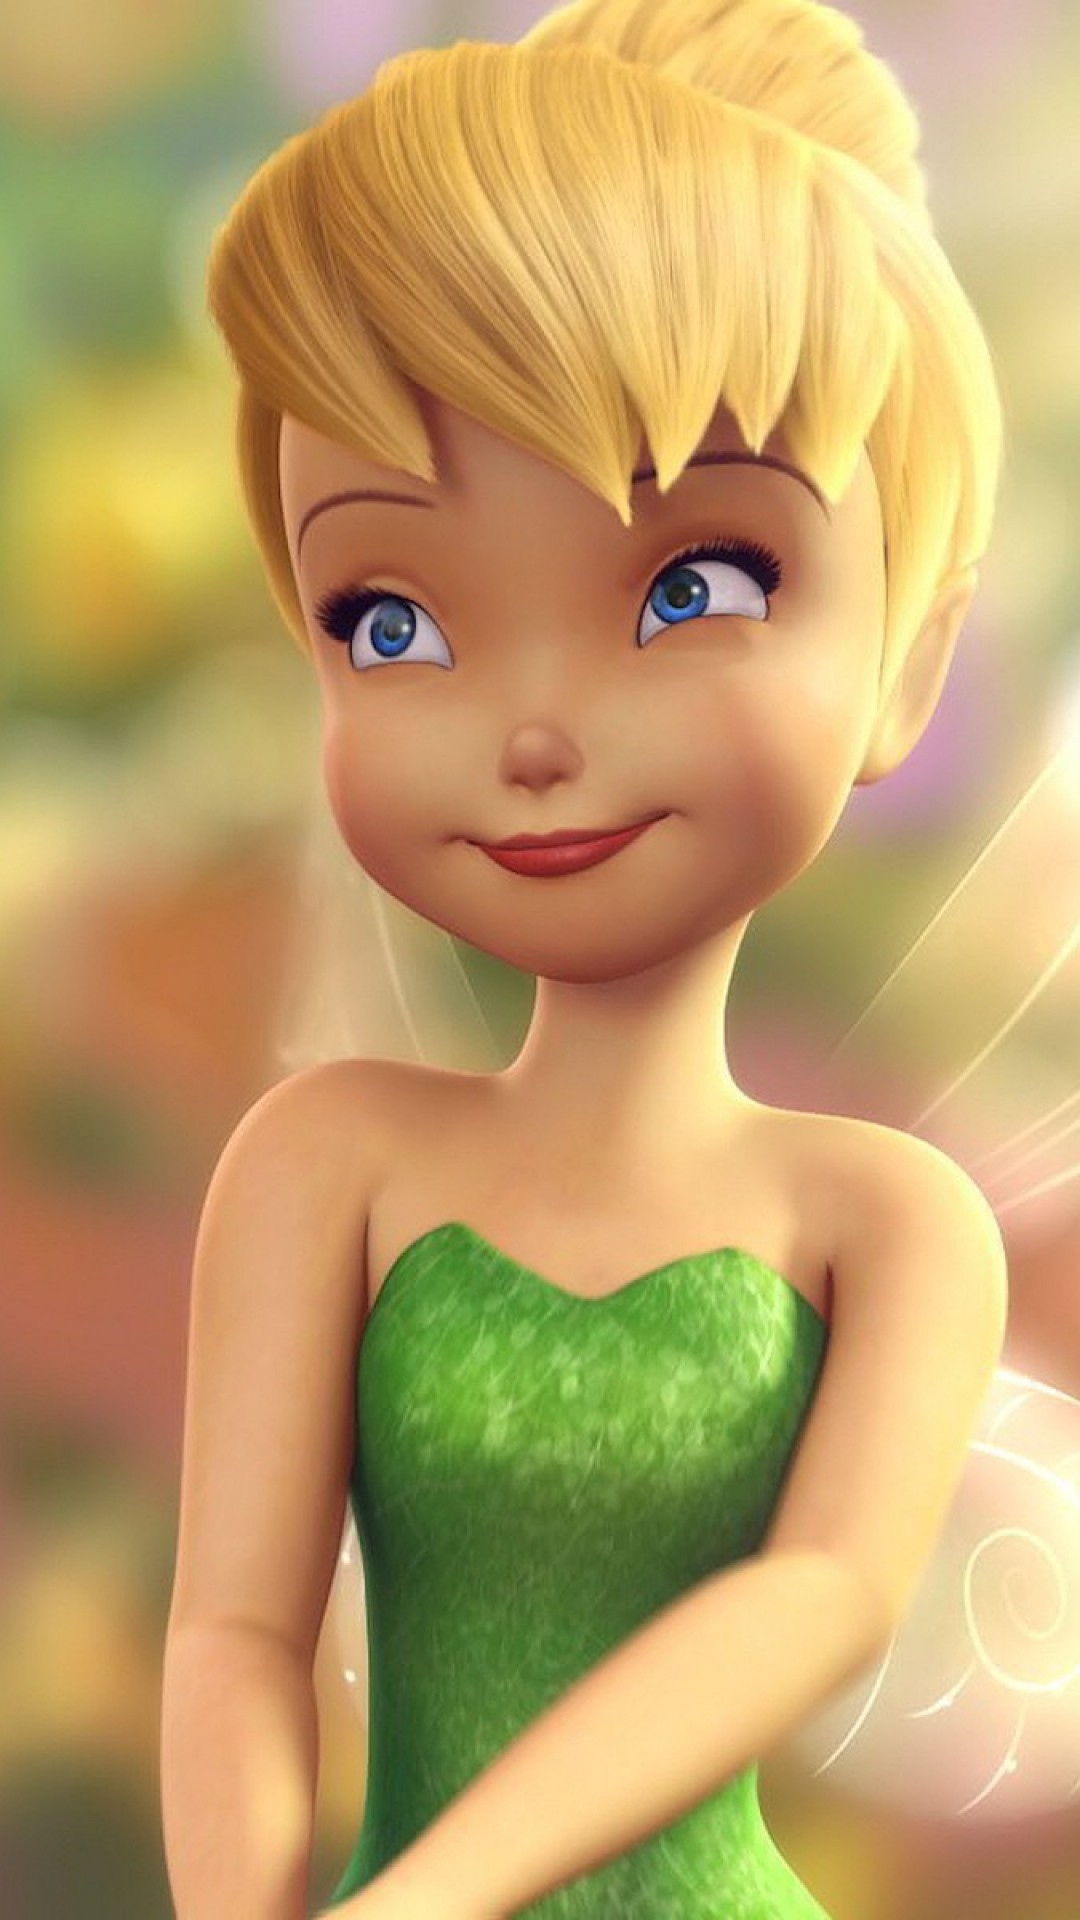 Cute Cat Computer Wallpaper Tinker Bell Wallpapers And Screensaver 76 Images